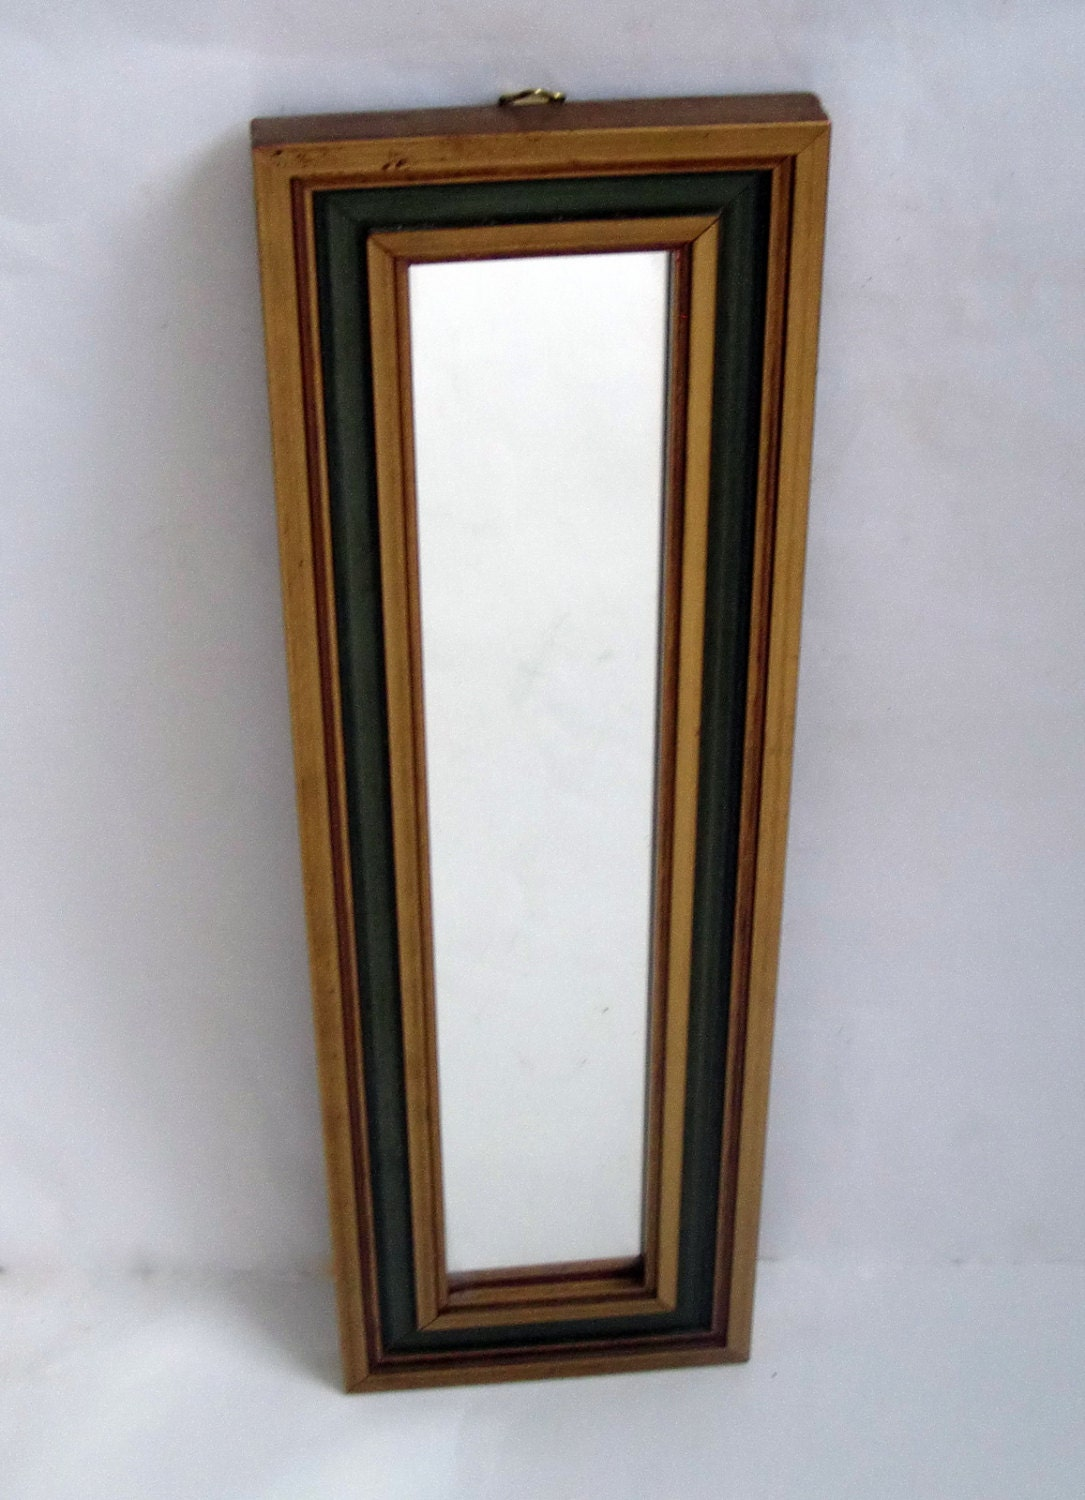 Vintage french mirror slim wall mirror narrow rectangular for Narrow wall mirror decorative